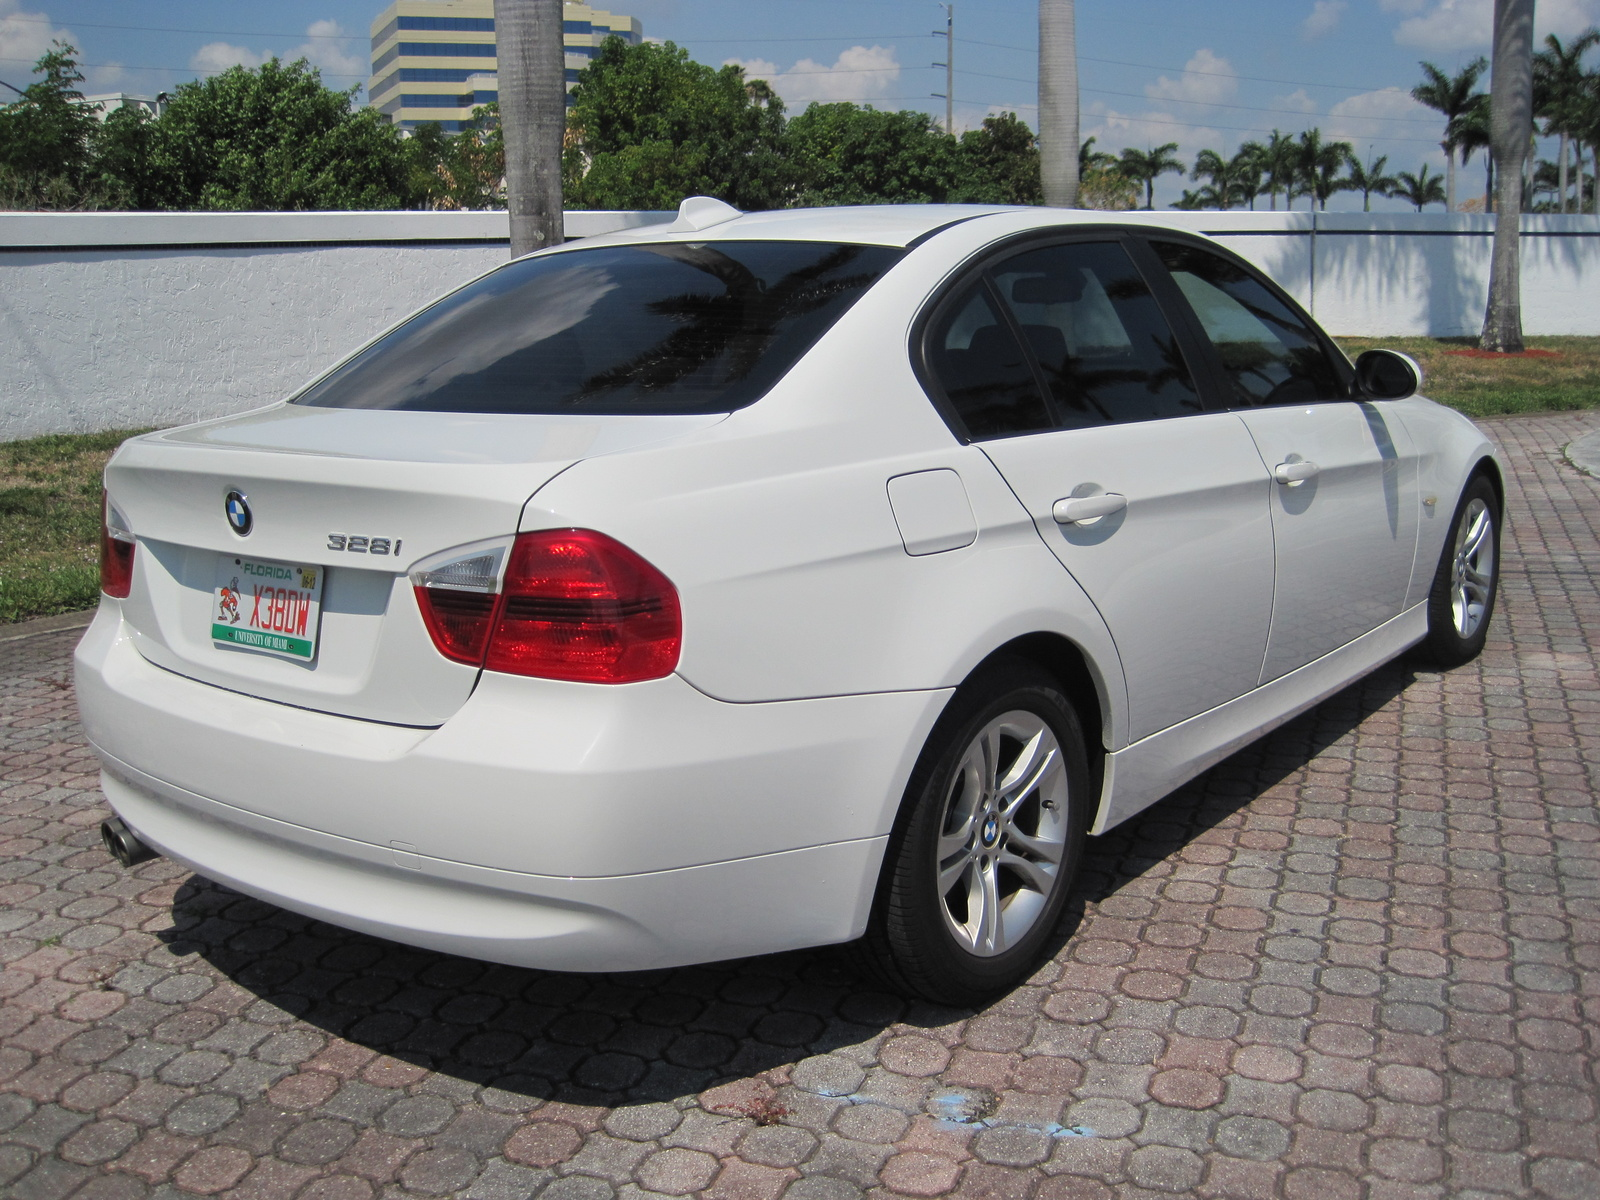 BMW 3 series 328xi 2008 photo - 6